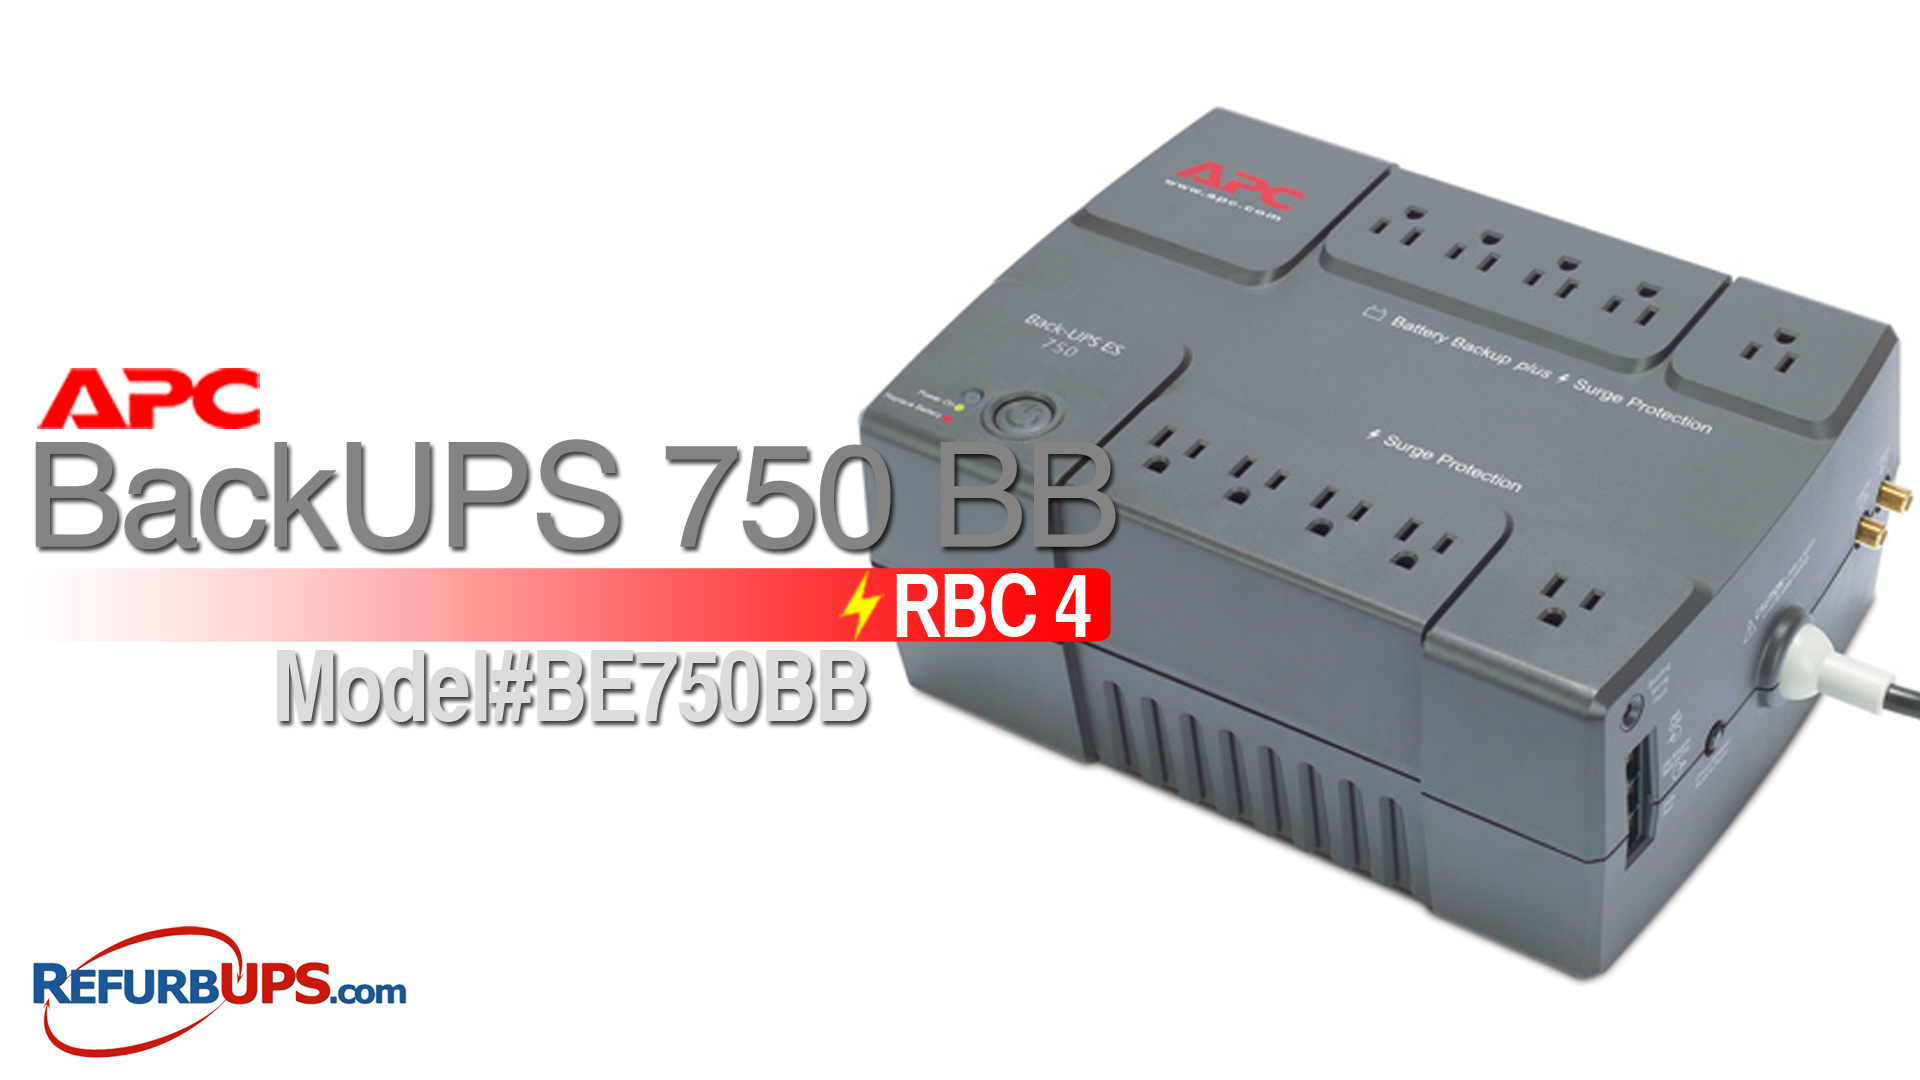 APC RBC 4 in APC BackUPS 750BB